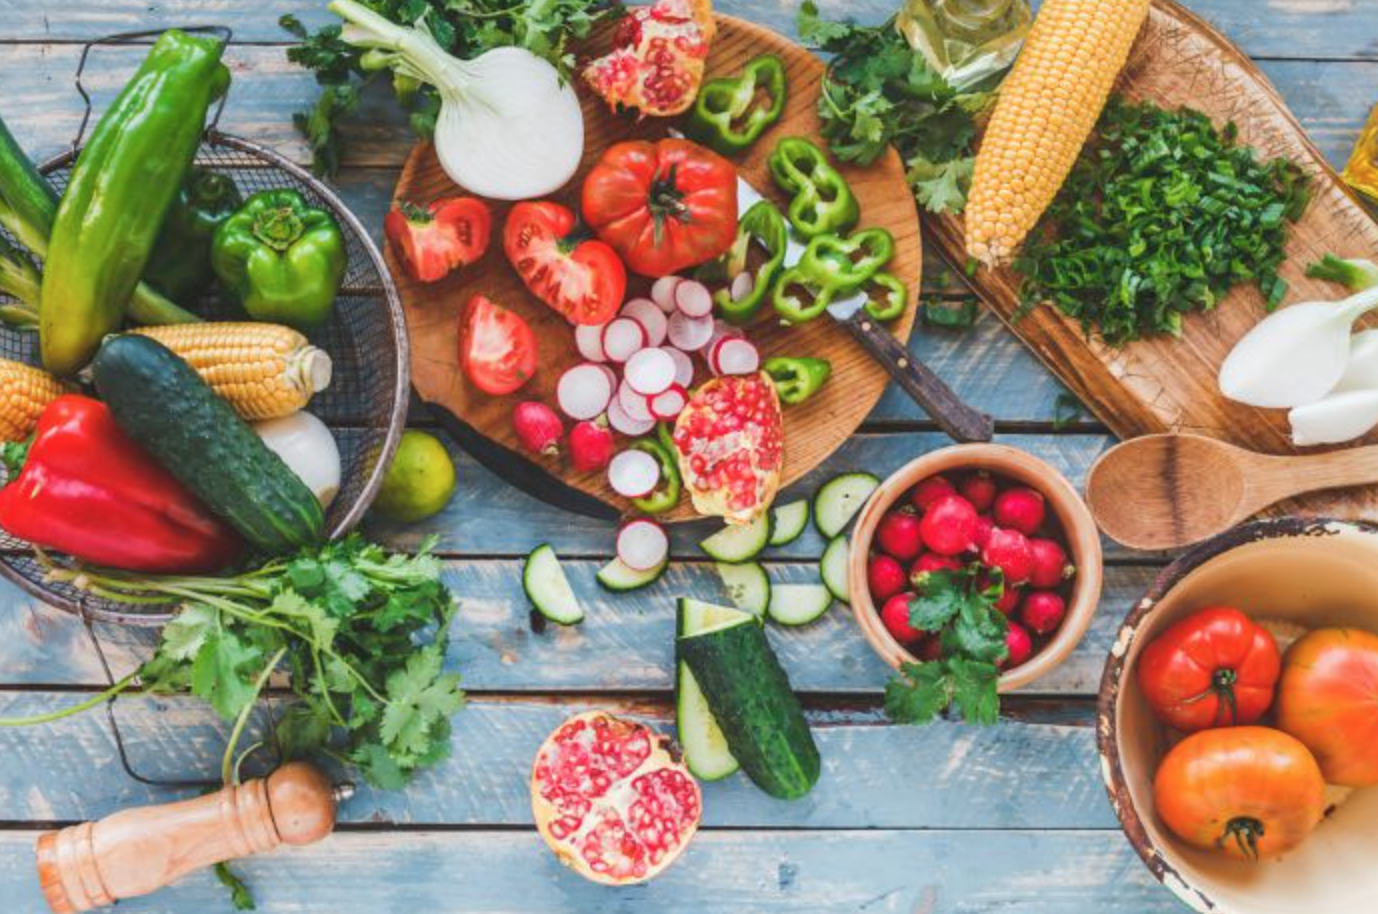 Ways to sneak more nutrition into your meals